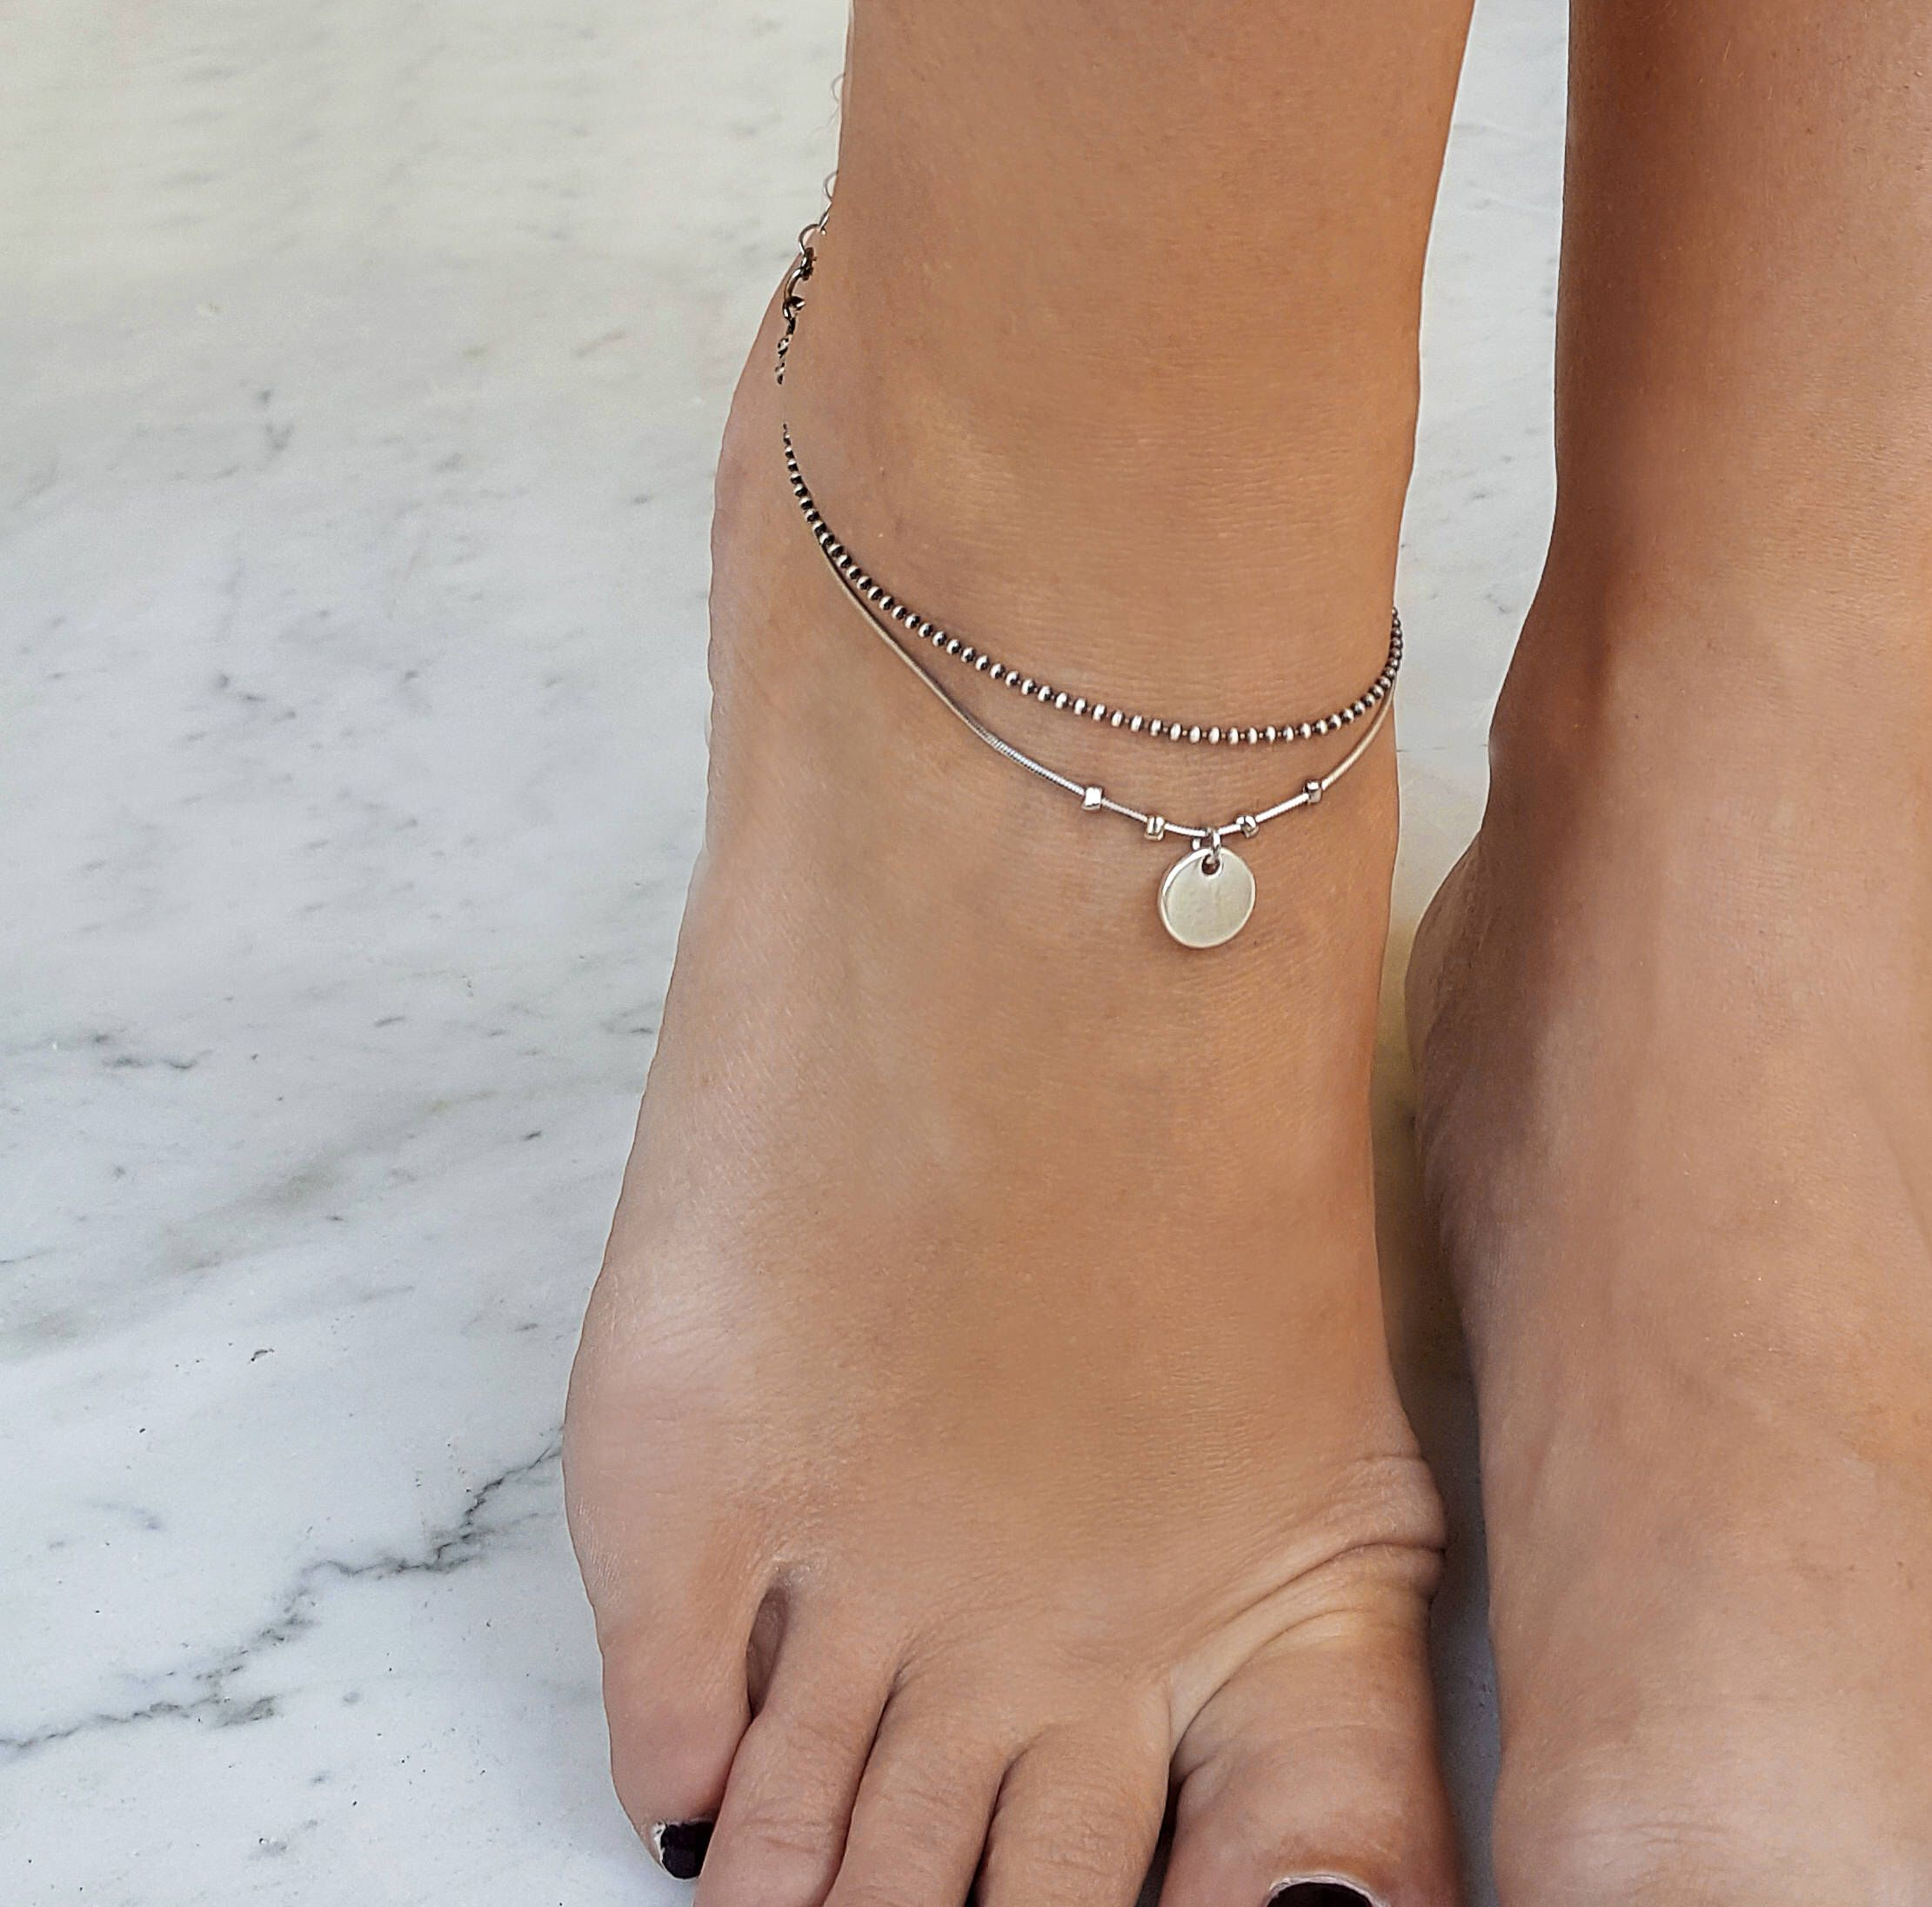 bracelets girls ribbon sandals beach store sandal anklet purple anklets sliver barefoot for glass black imtation jewelry ankle simple design pearl foot product